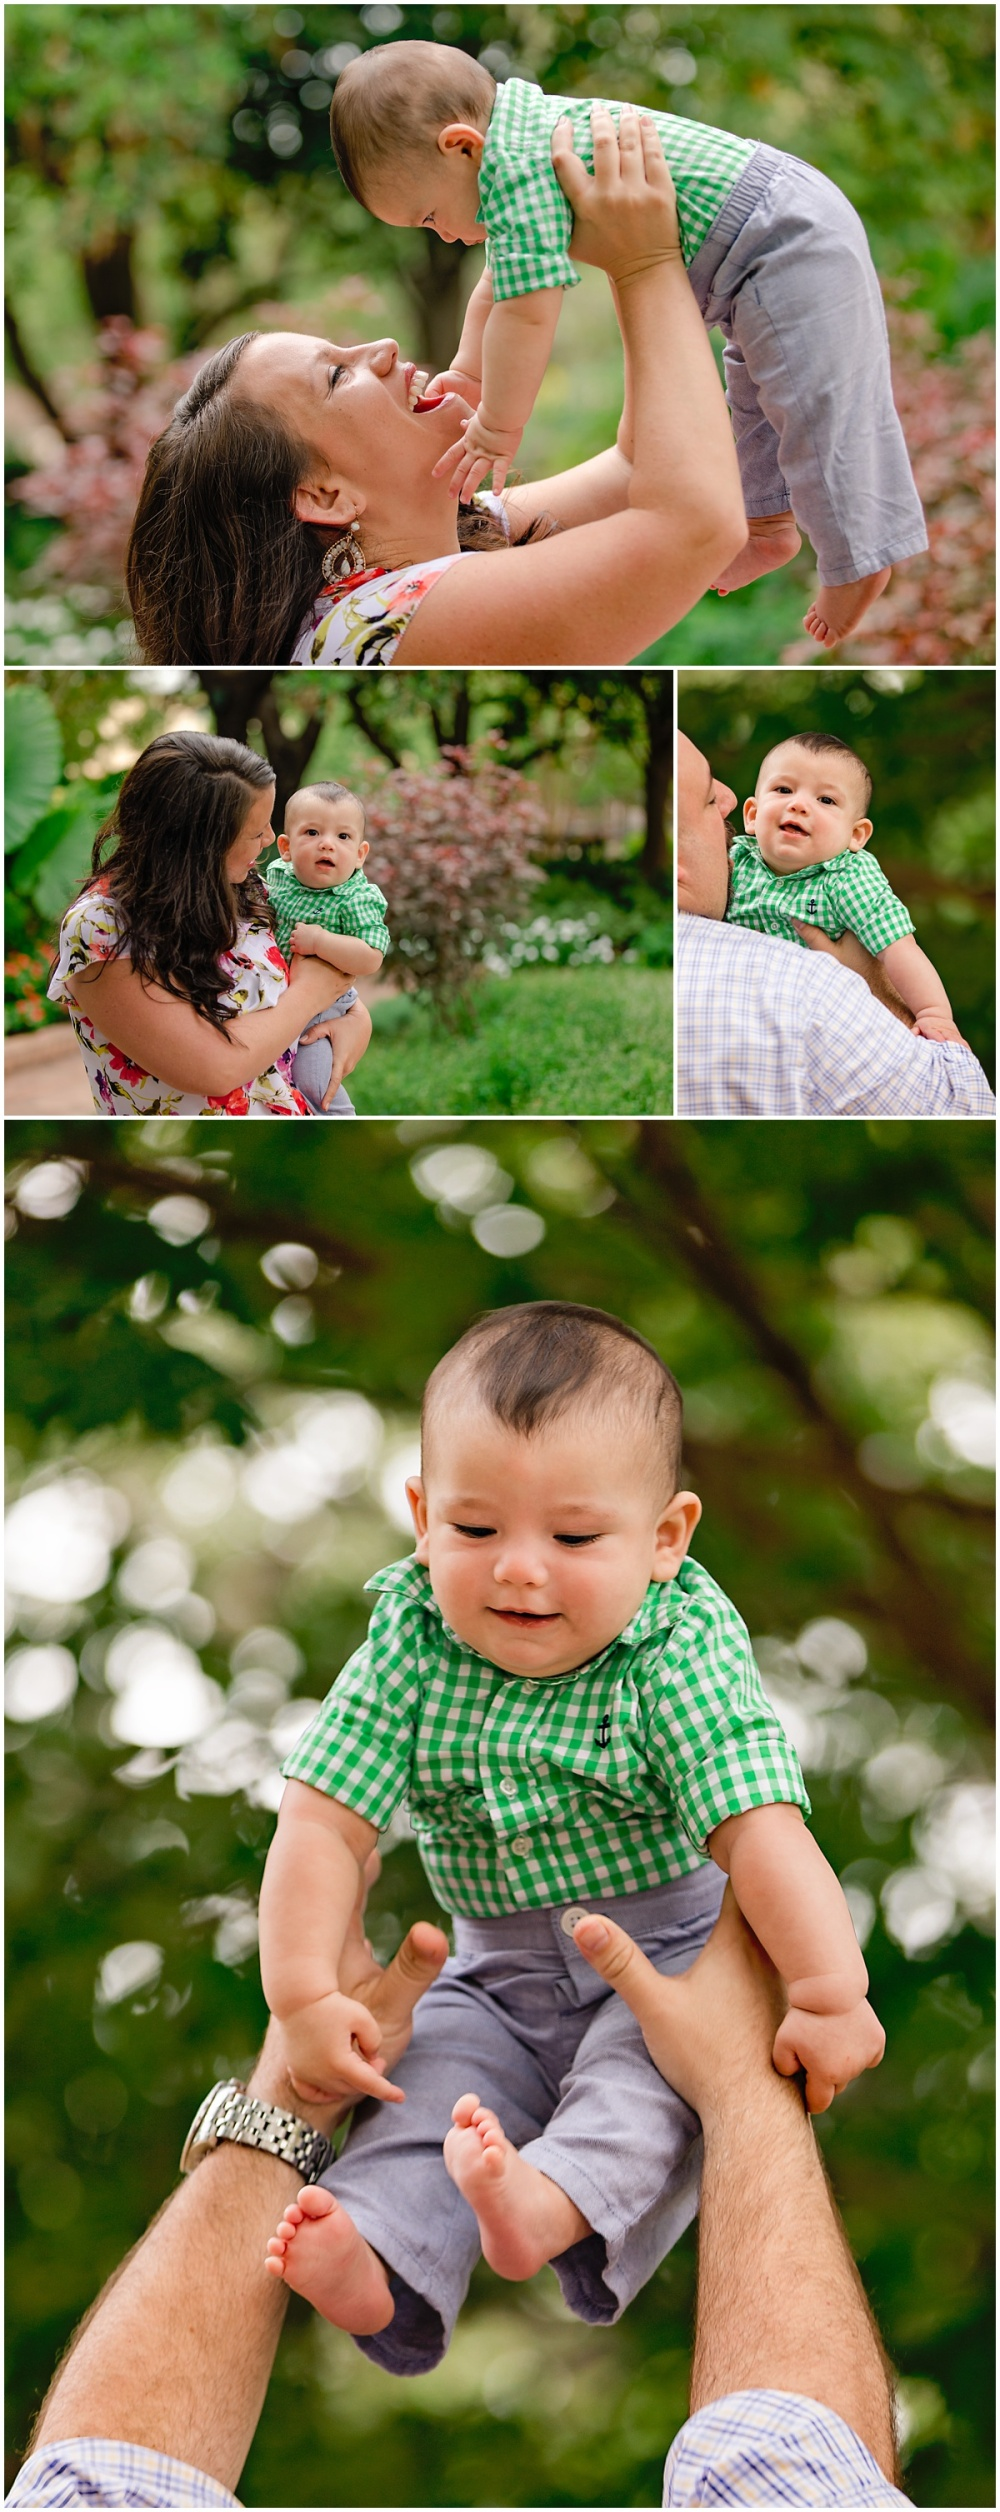 Family-Children-Maternity-Portraits-San-Antonio-Hill-Country-Texas-Carly-Barton-Photography_0015.jpg